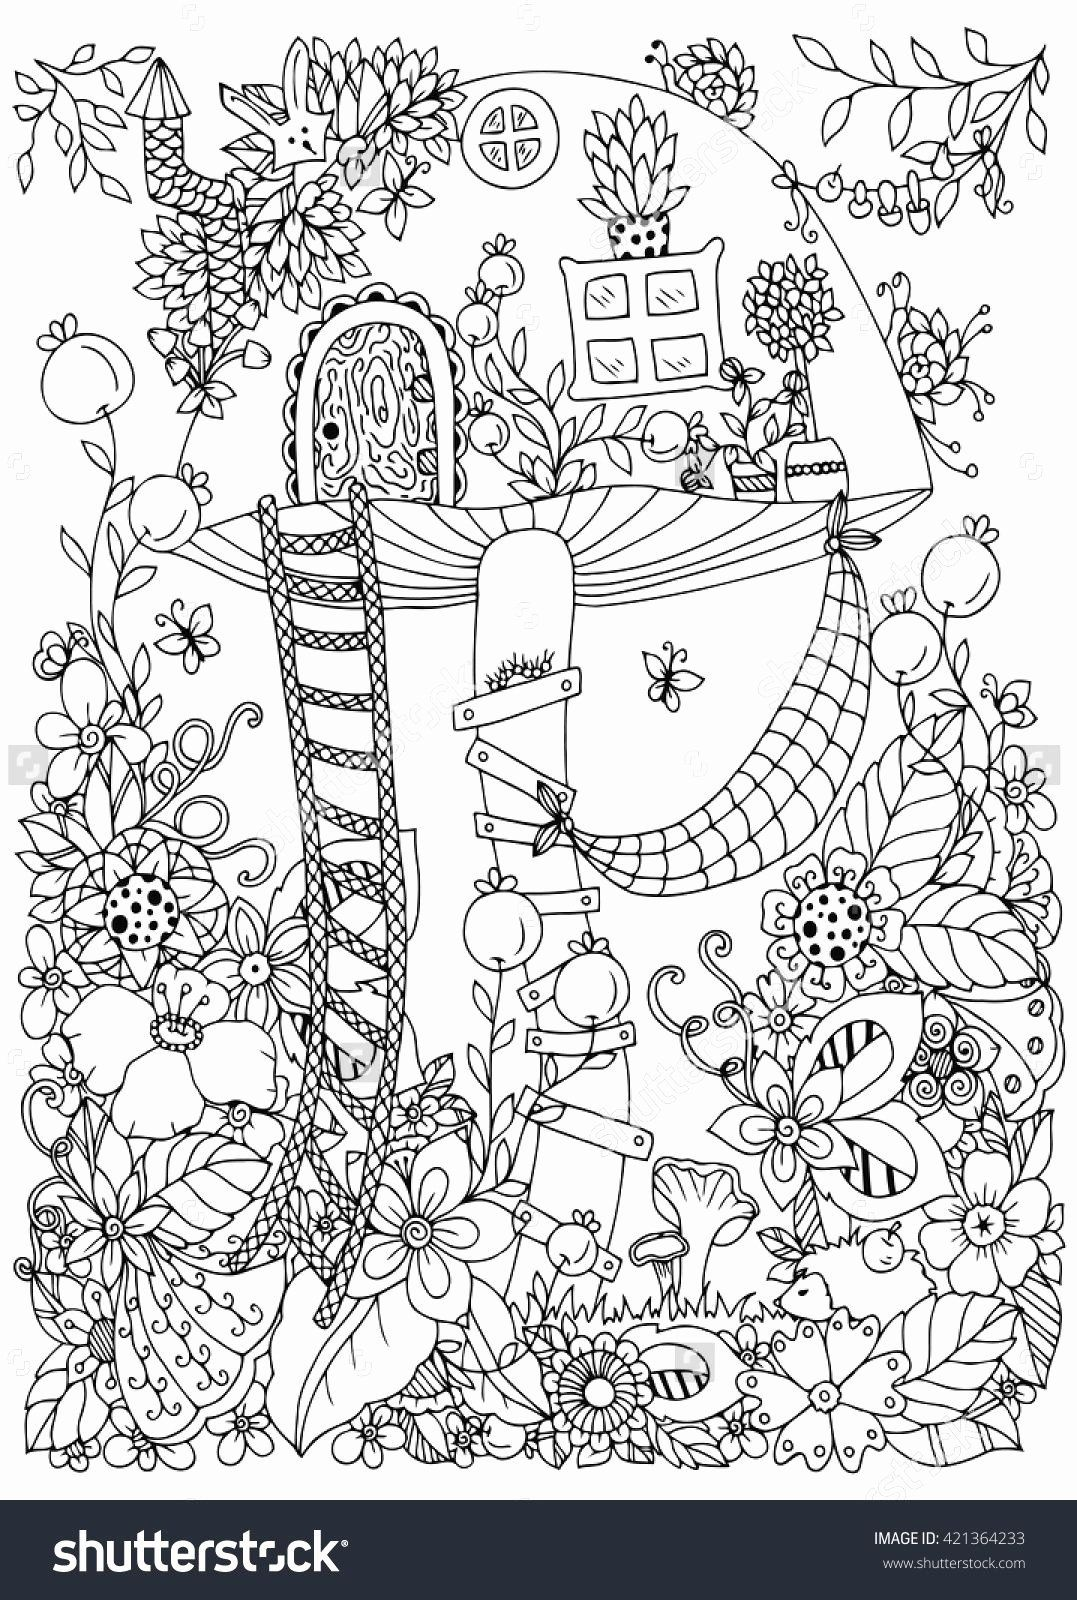 Forest Coloring Pages For Adults Inspirational 1725 Best Coloring Pages Images On Pinterest Martin Chandra Coloring Pages Free Coloring Pages Coloring Books